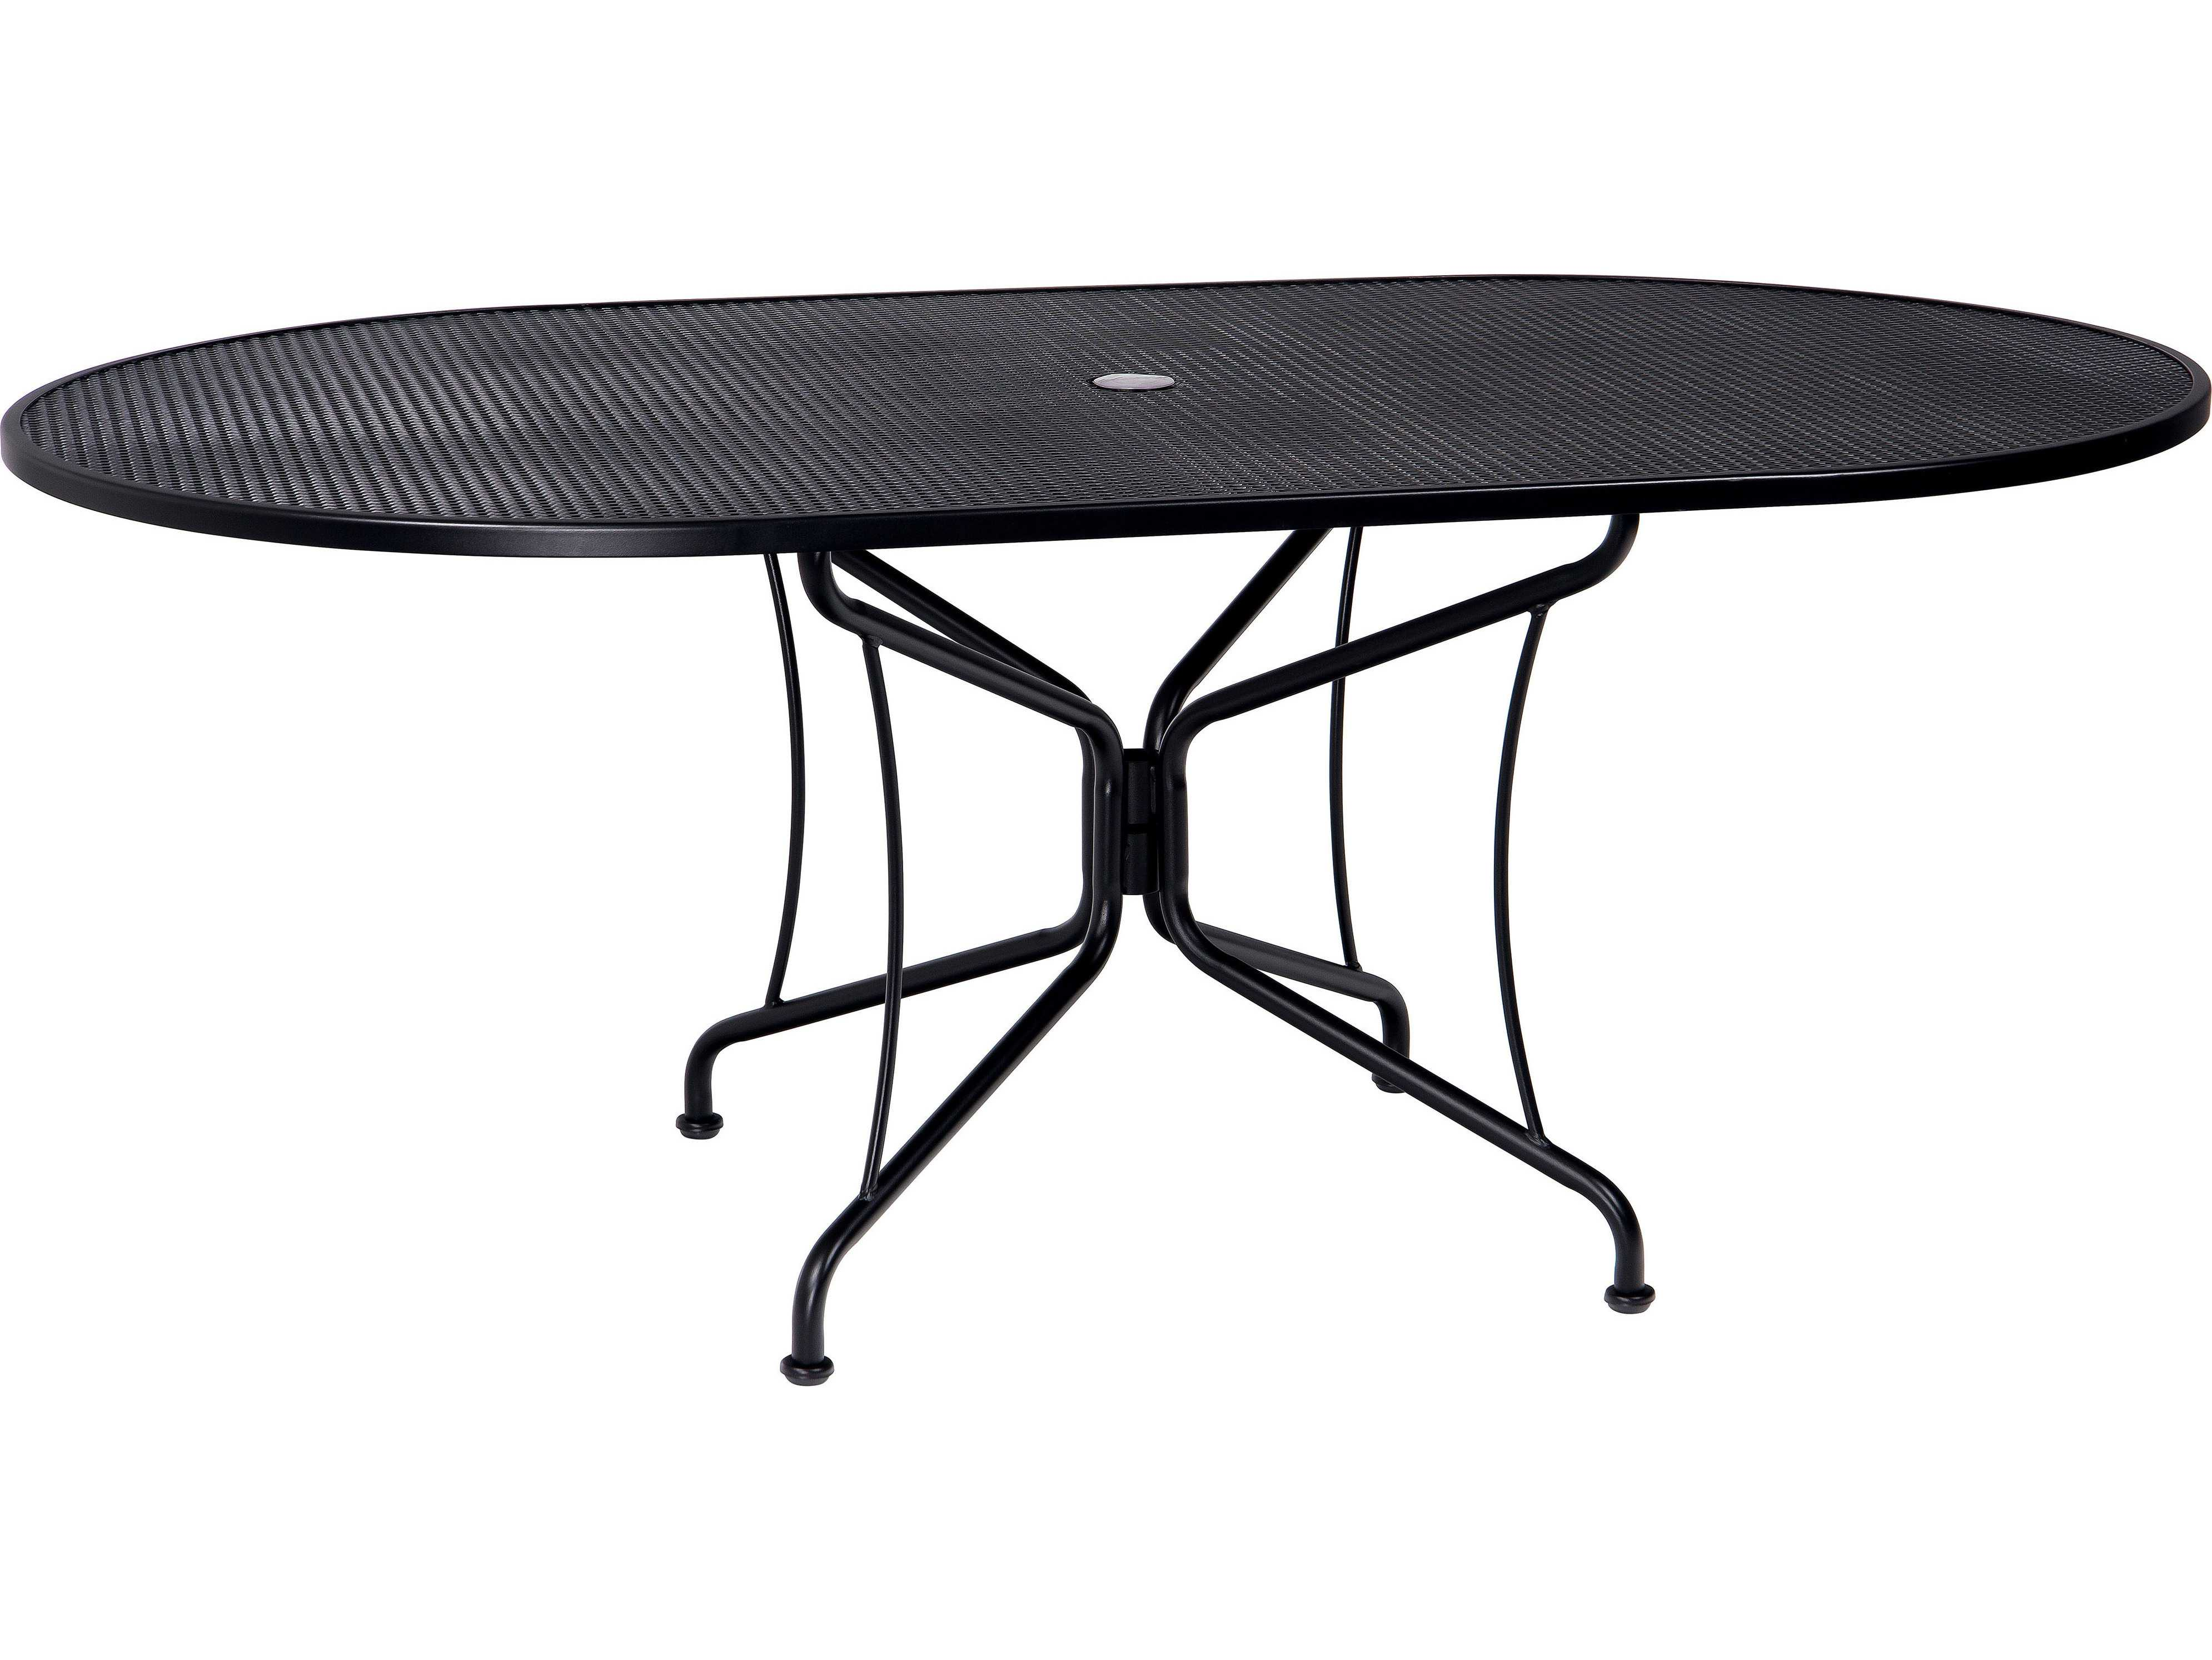 woodard wrought iron 72 x 42 oval 8 spoke table with umbrella hole wr190306. Black Bedroom Furniture Sets. Home Design Ideas